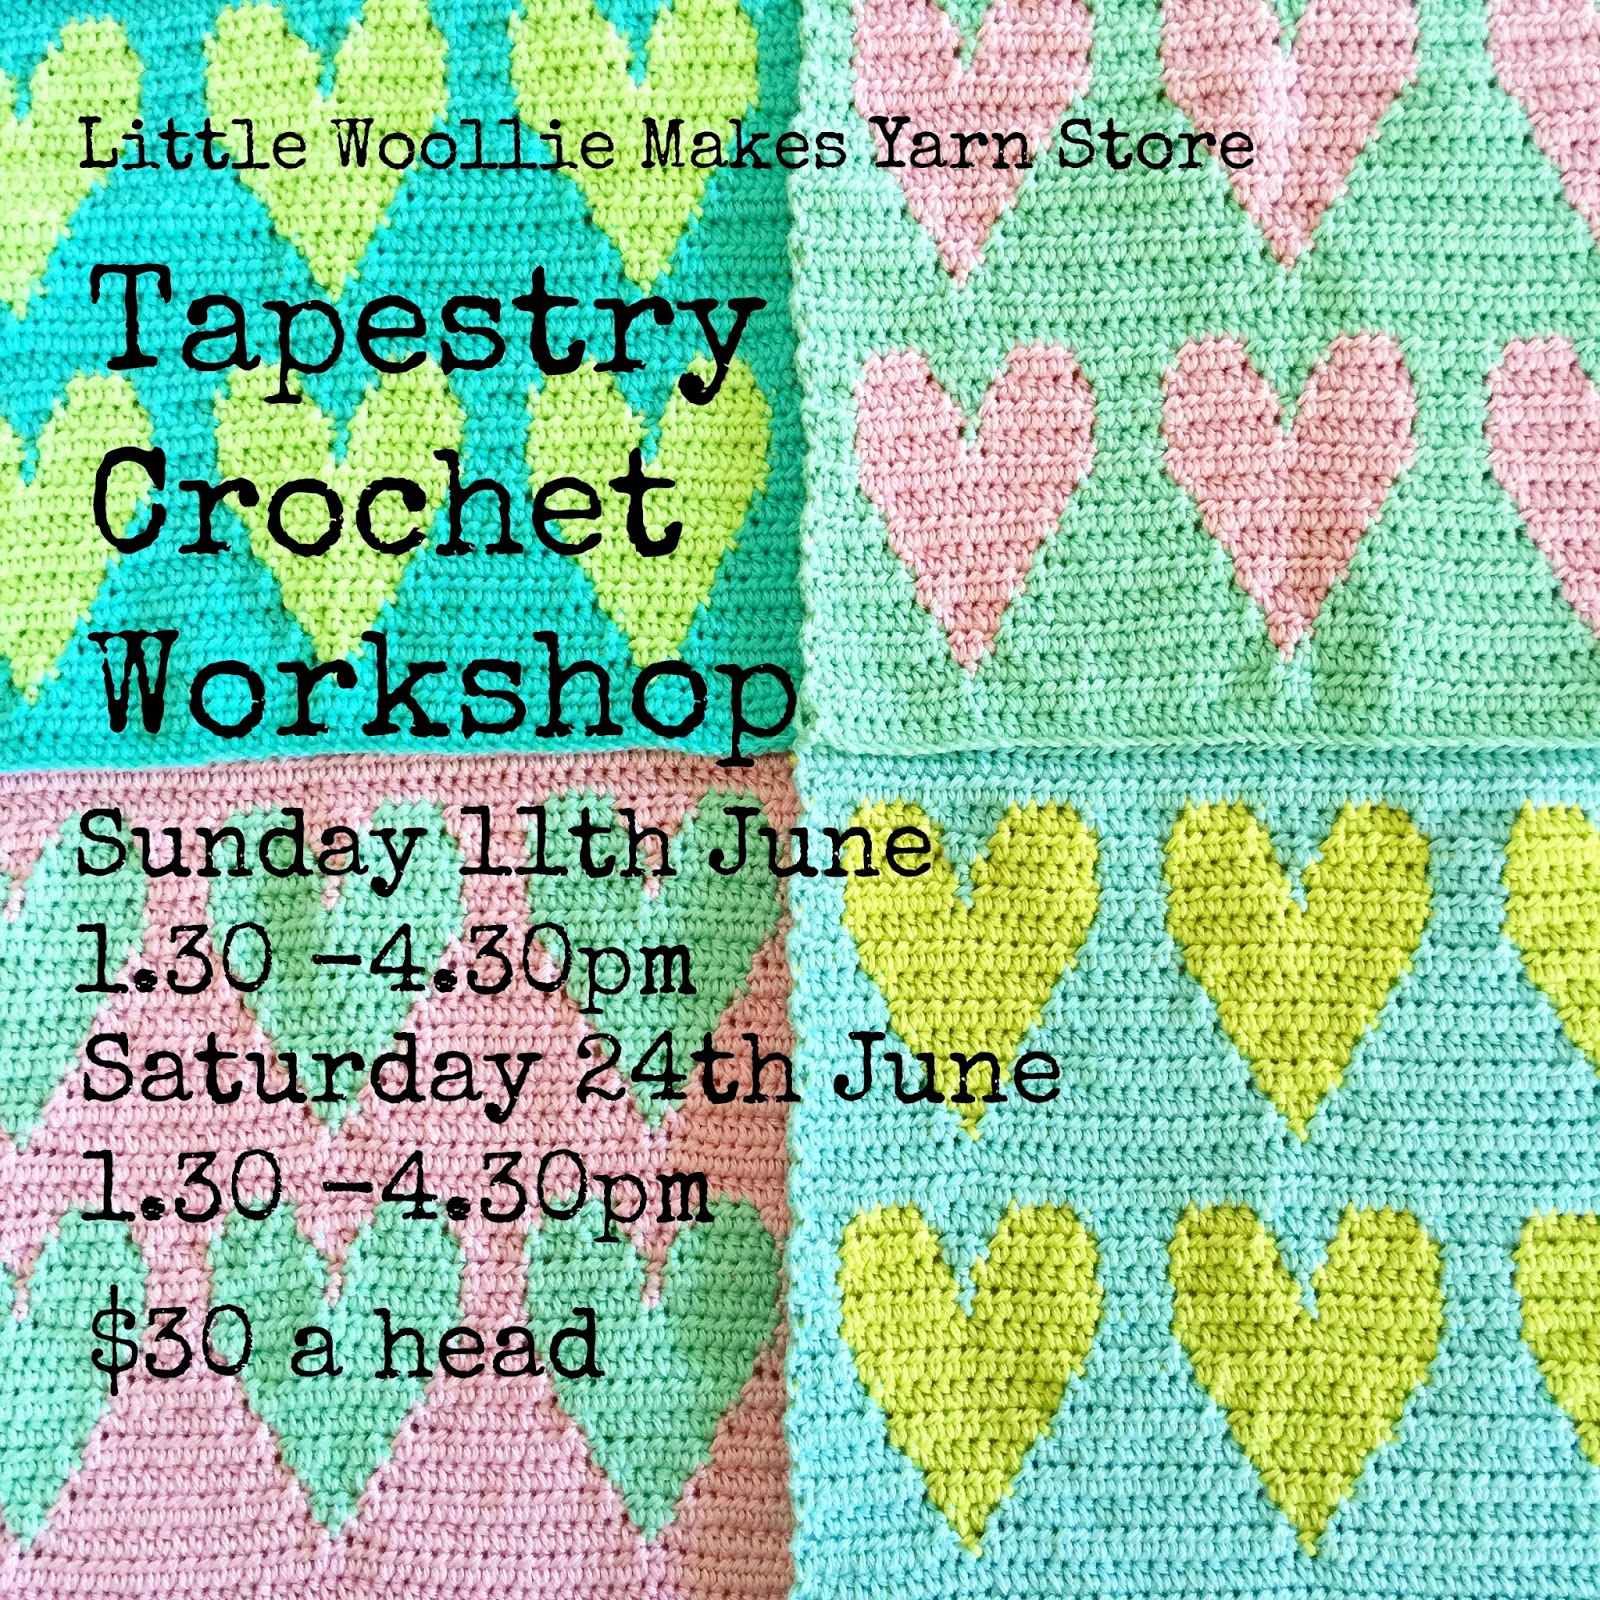 little woollie: June workshops